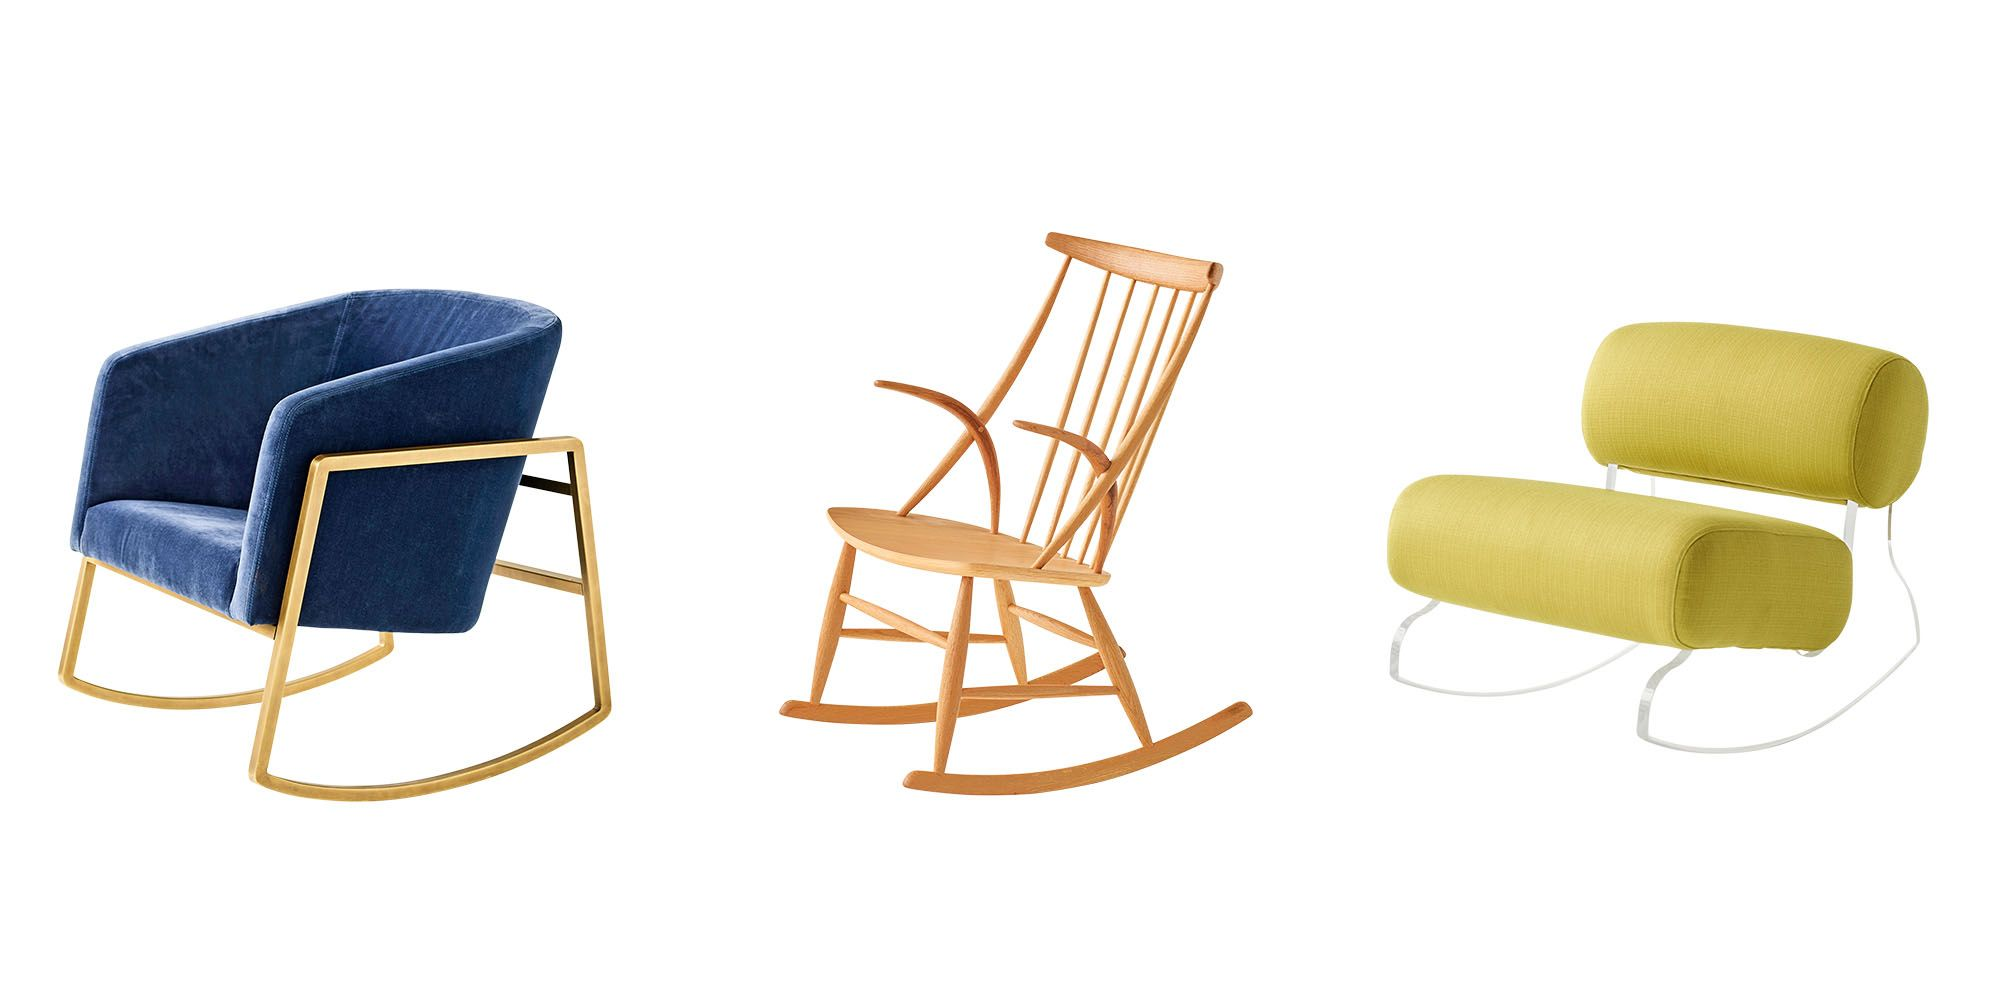 10 Tasteful Rocking Chairs That Work Perfectly Indoors Or Out